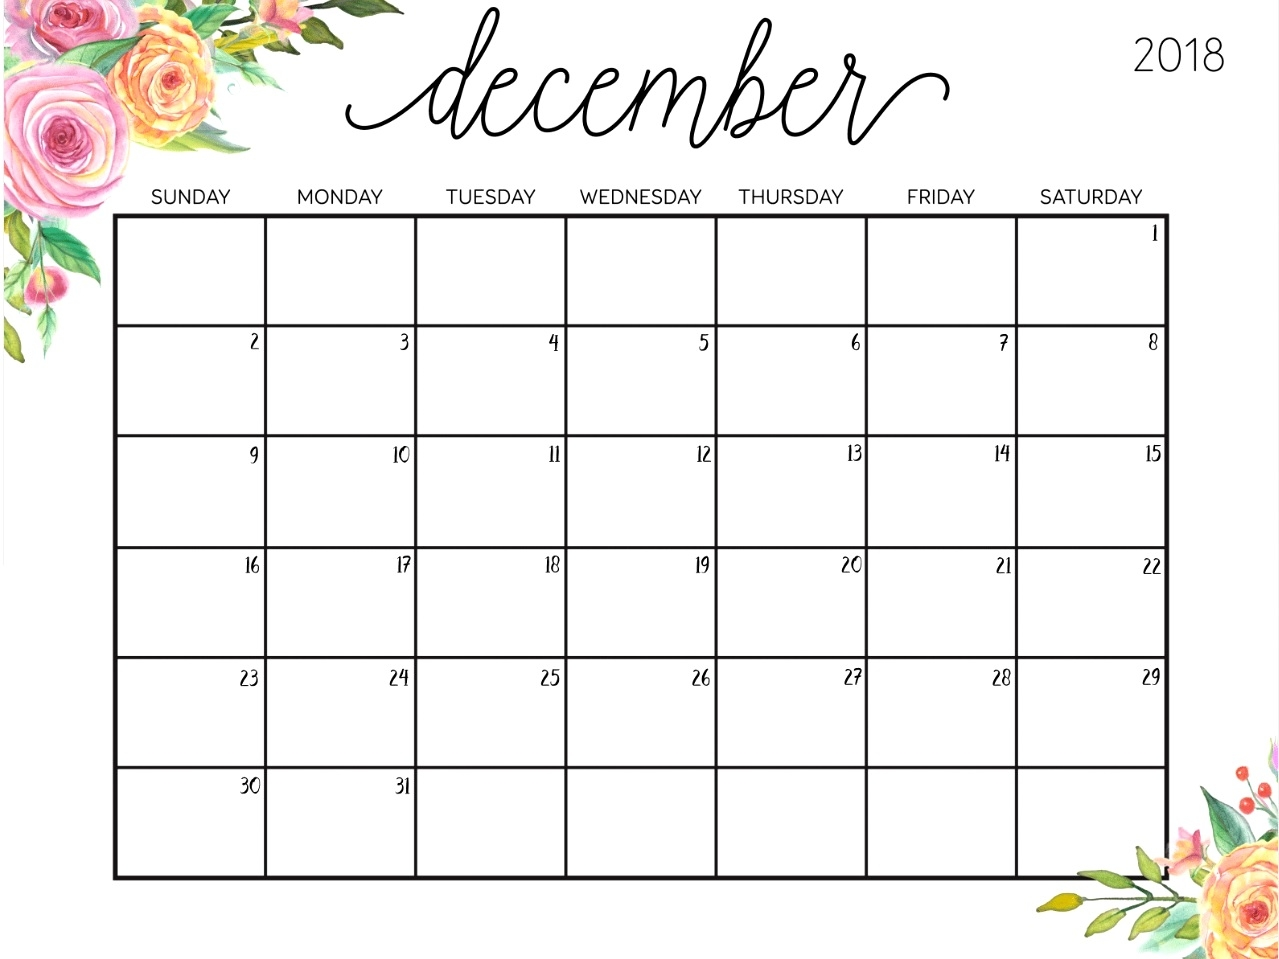 december 2018 cute calendar printable printable calendar 2018::December 2018 Calendar Template